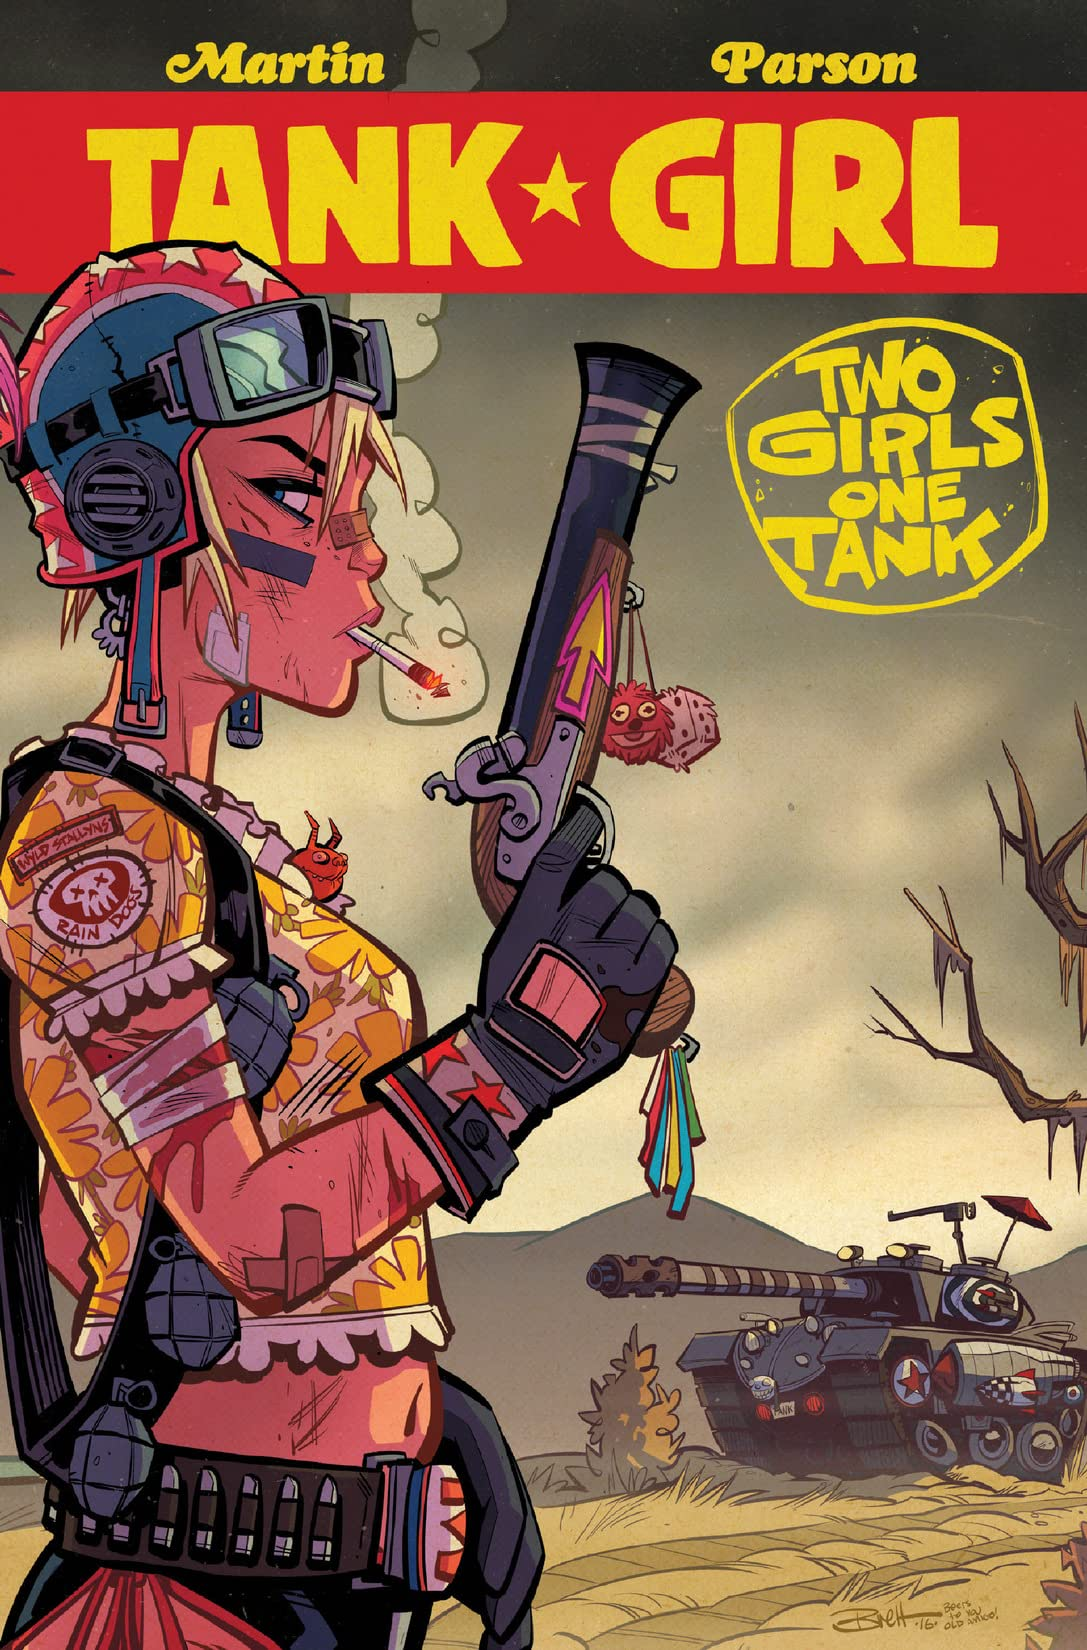 Tank Girl: Two Girls One Tank #4